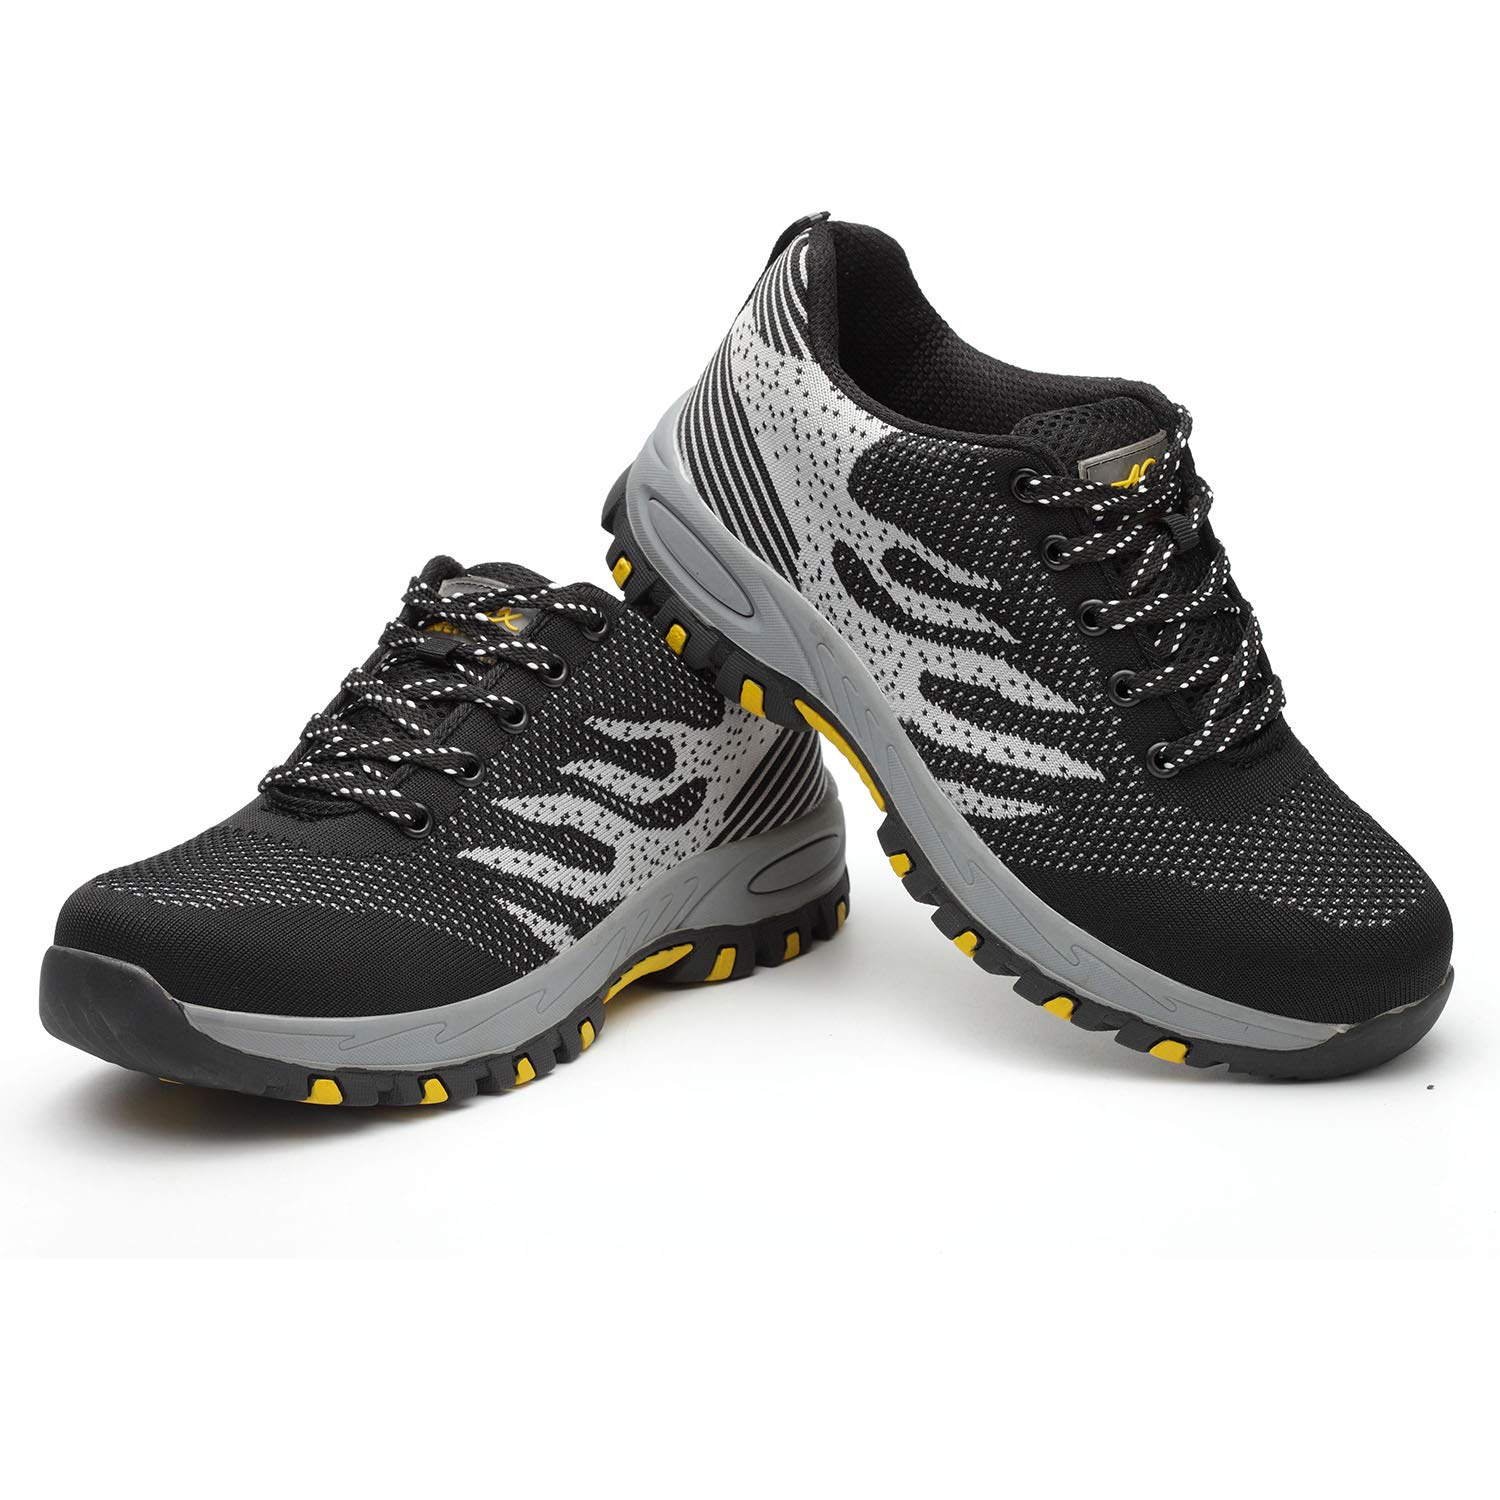 Barerun Work Steel Toe Safety Shoes for Men Women Lightweight Breathable Industrial /& Construction Protect Shoe